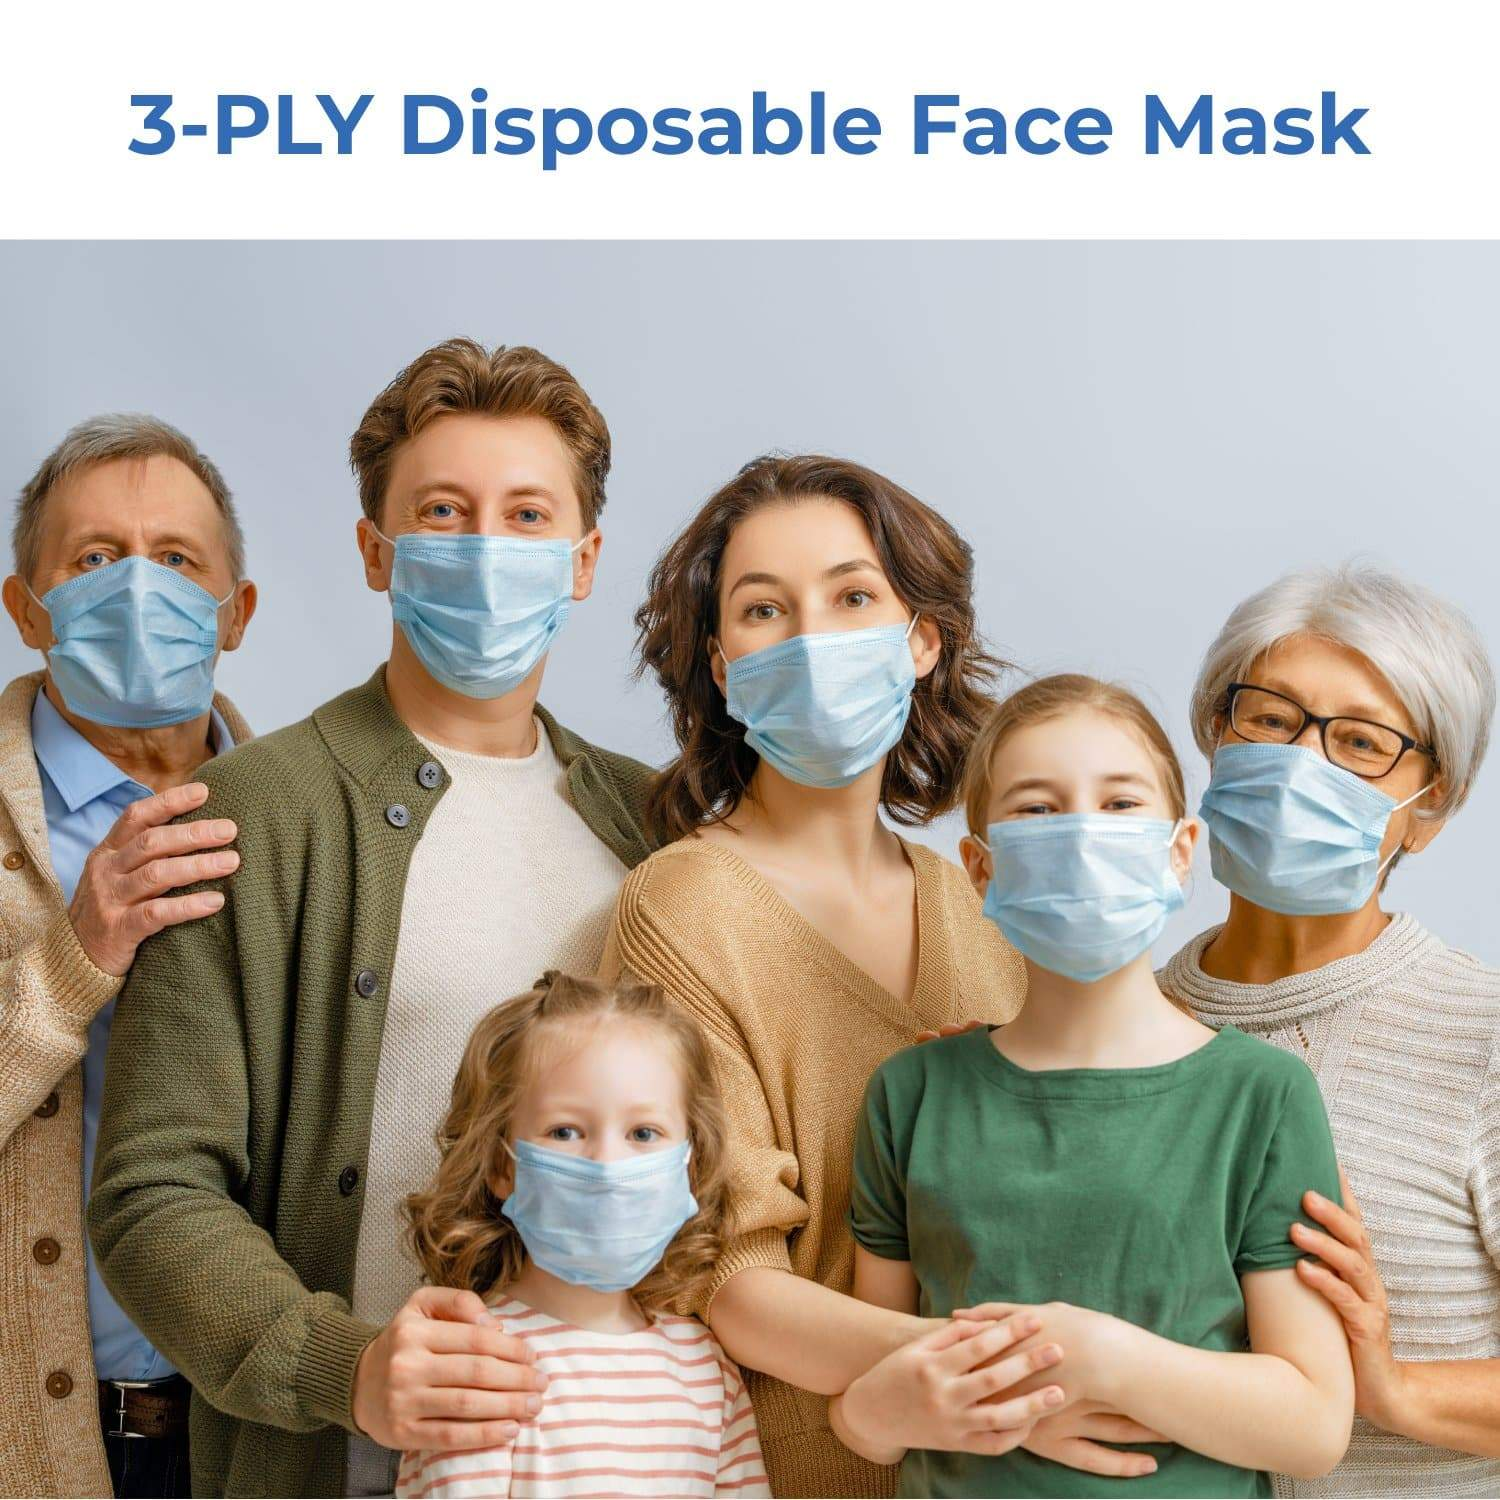 CLISEN DISPOSABLE SURGICAL MASK (NON-MEDICAL USE)